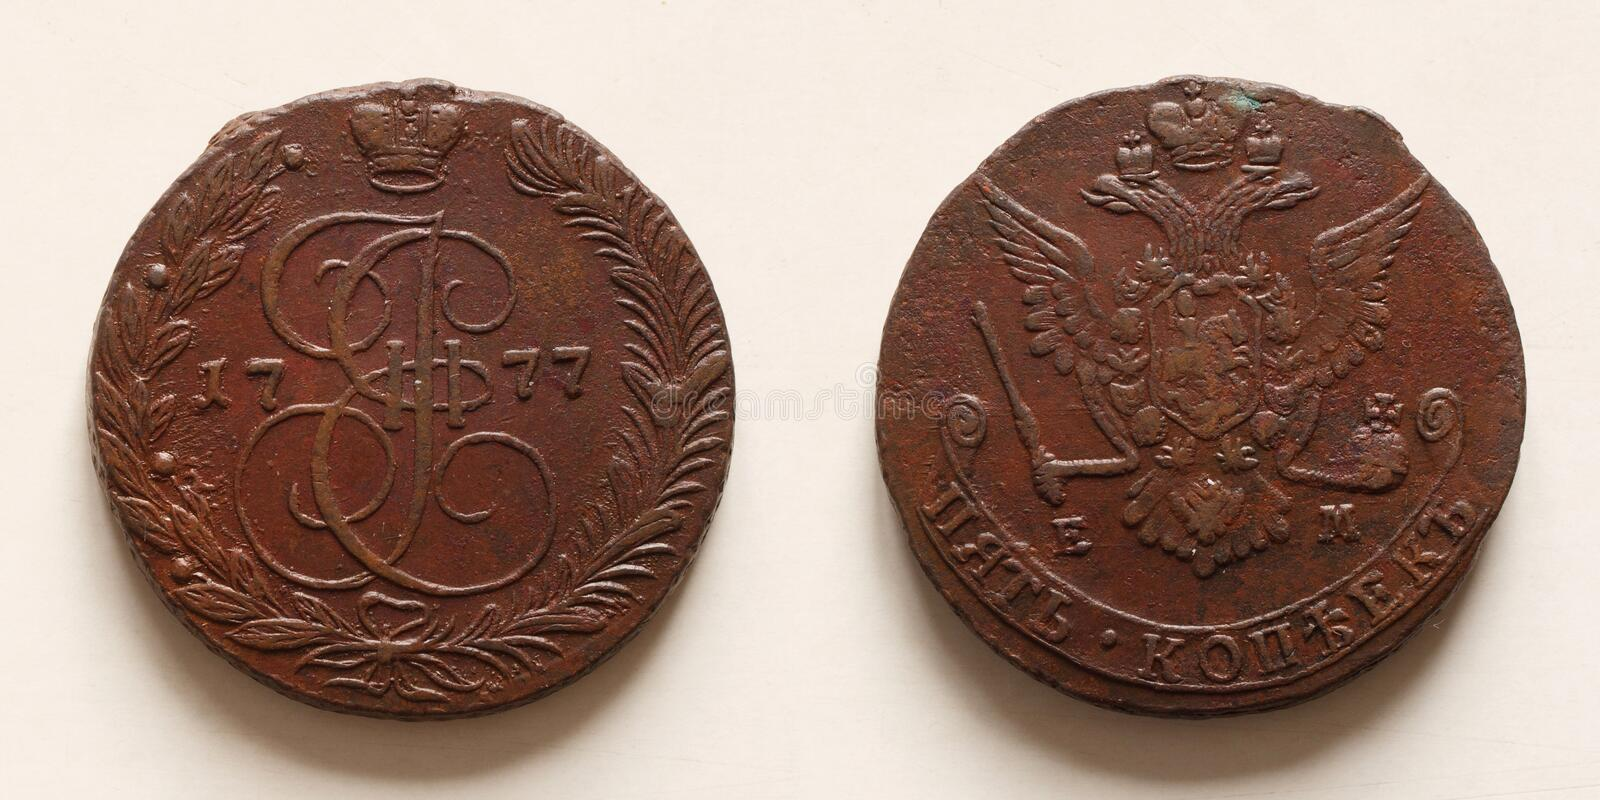 Antique russian coin 5 kopecks 1777. Eagle EM dark brown copper both sides stock image